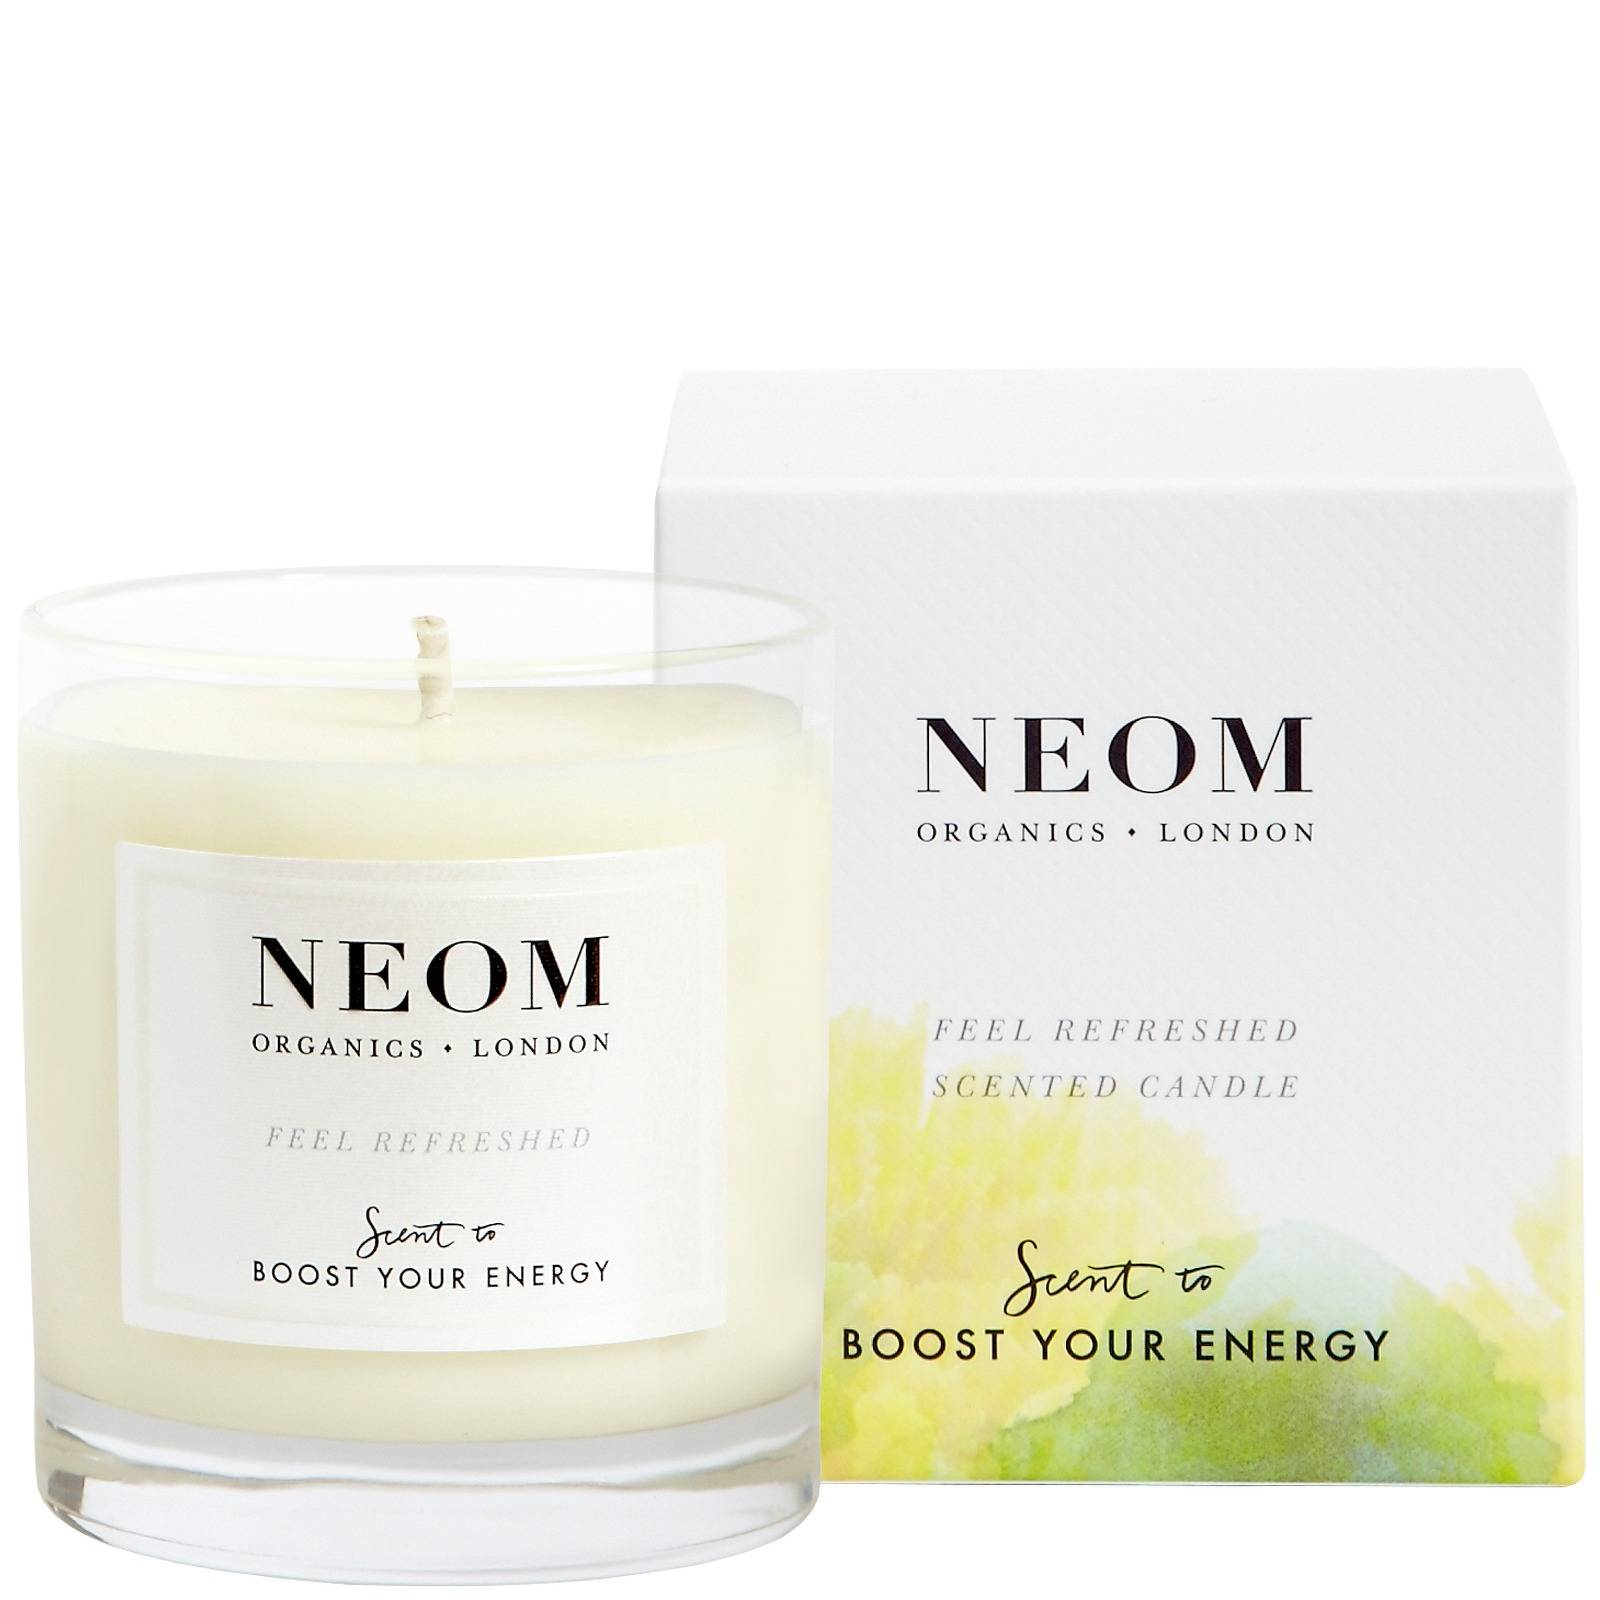 Neom Organics London Scent To Boost Your Energy Sentirsi rinfrescato candela profumata (1 stoppino) 185g